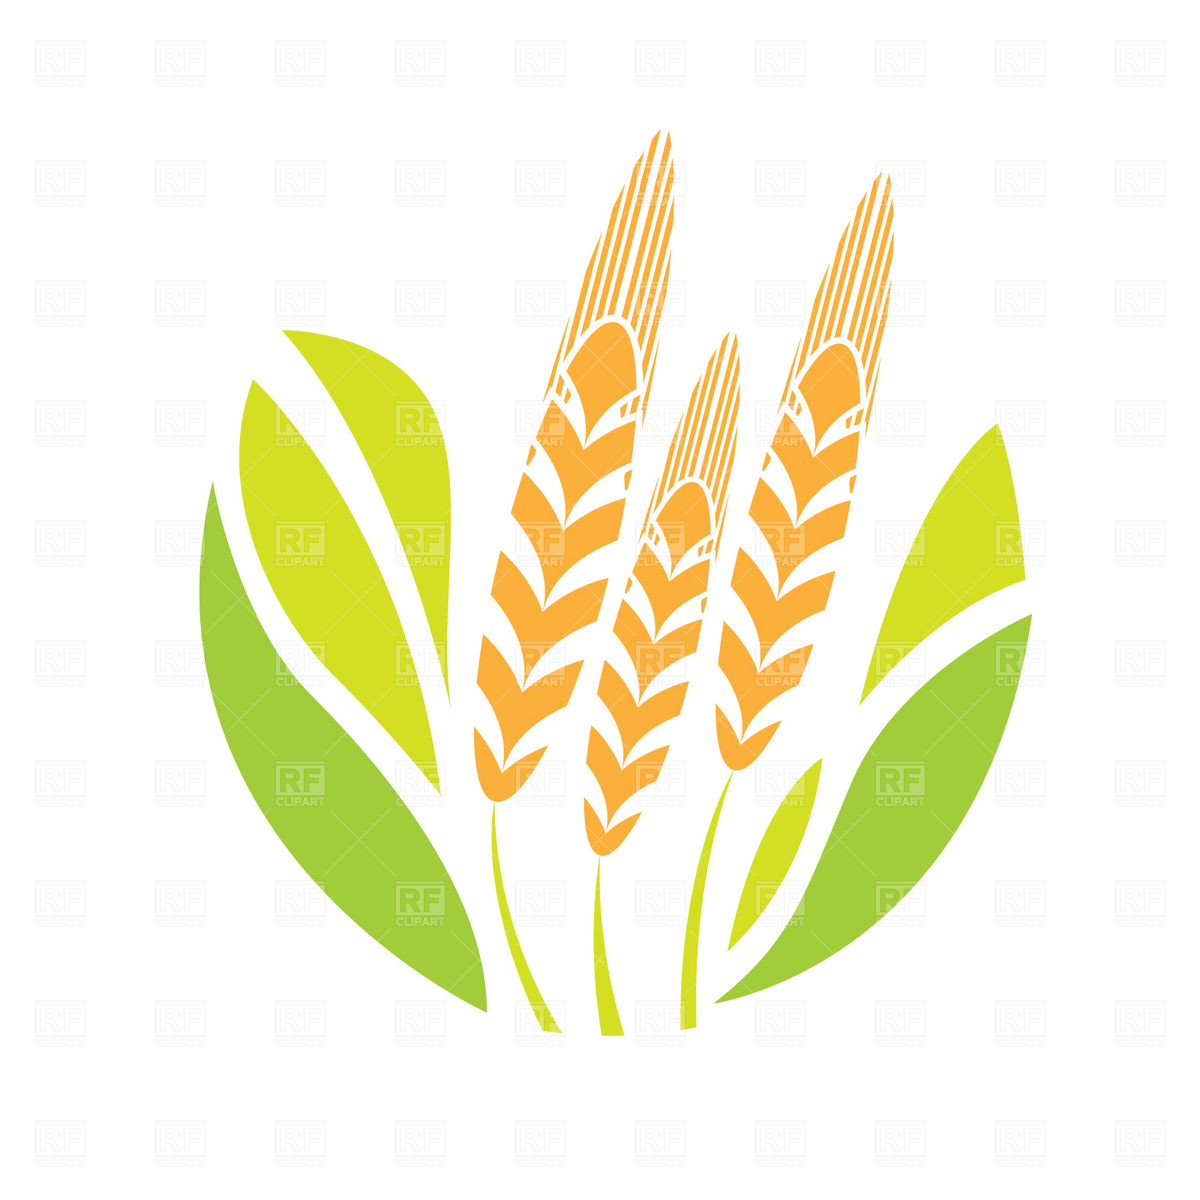 Agriculture Emblem Download Royalty Free Vector Clipart  Eps